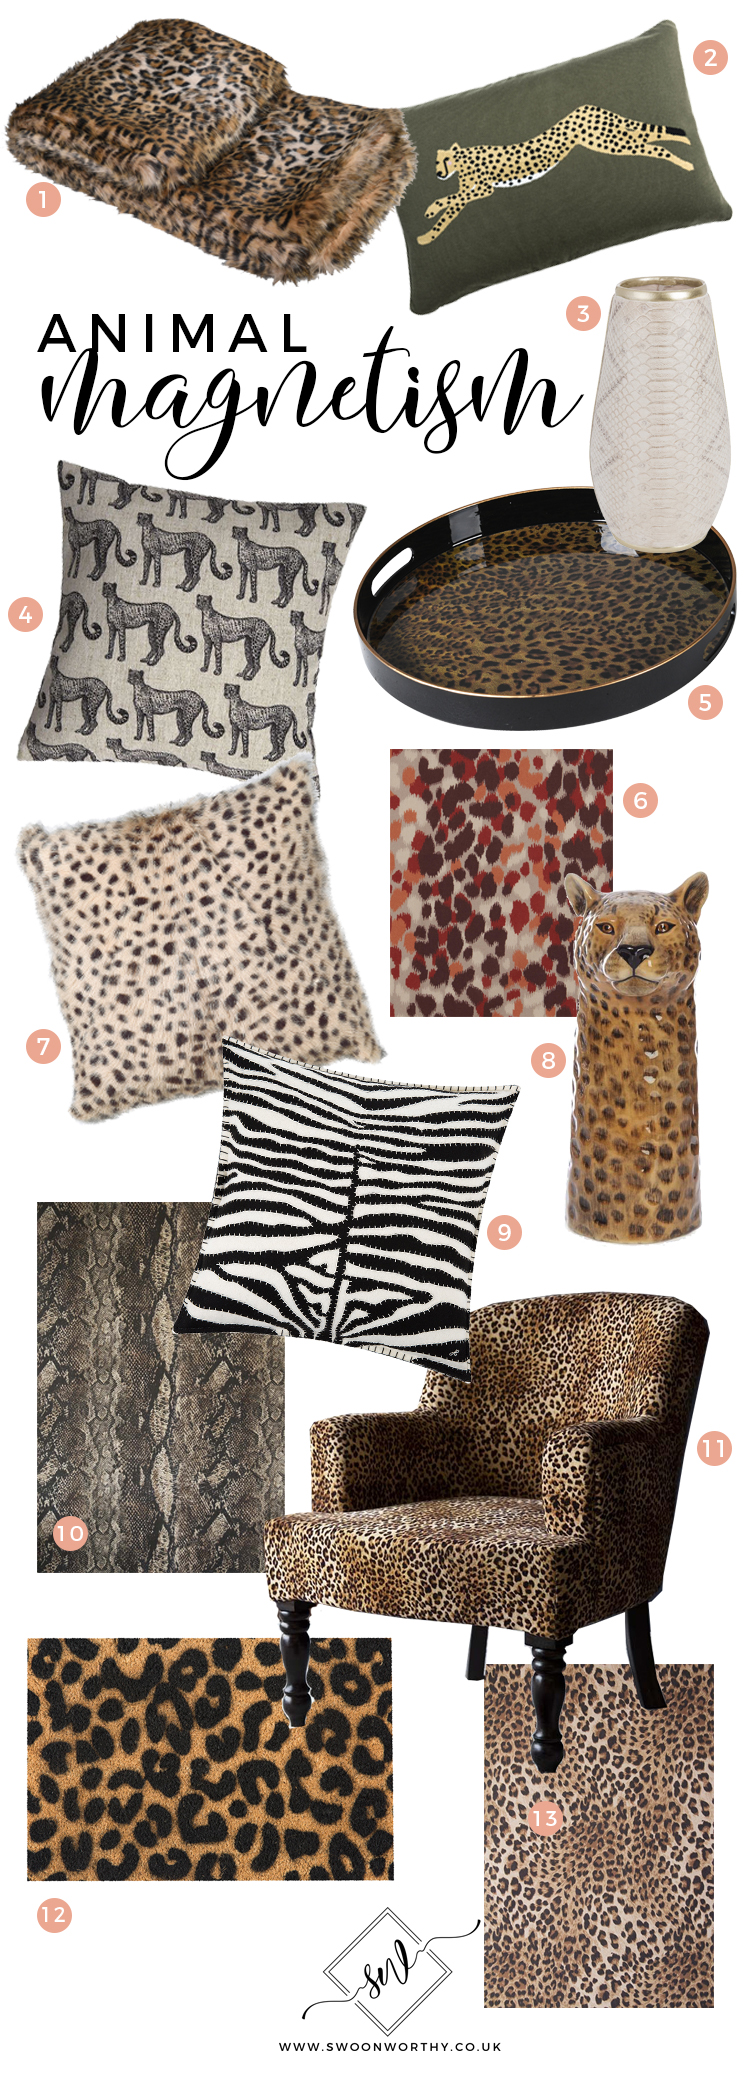 Animal Magnetism - Animal Print Homewares